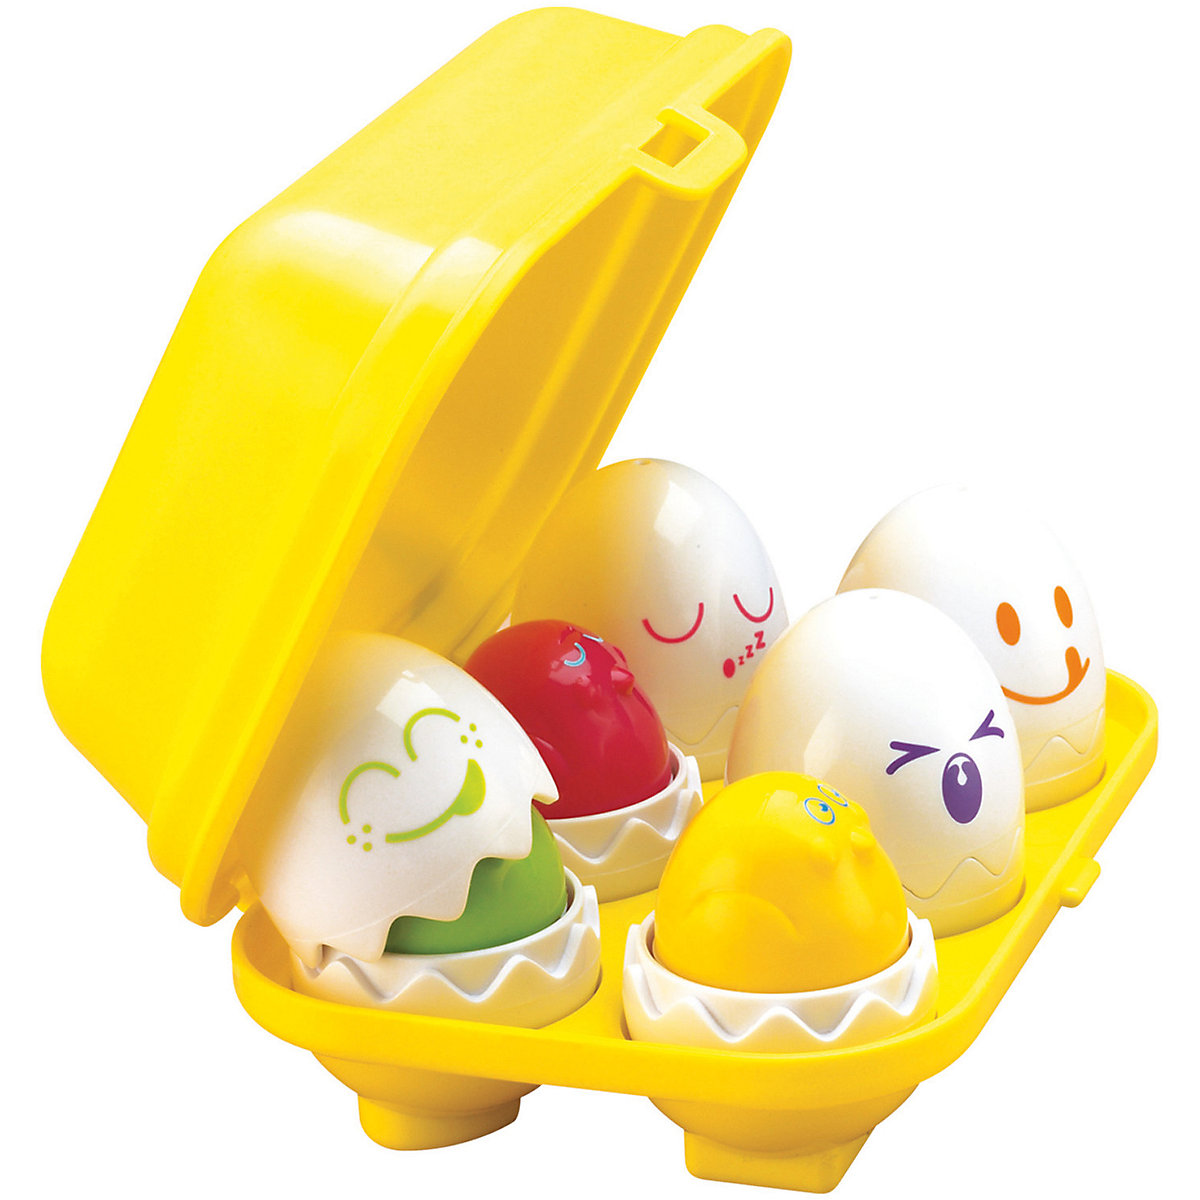 Bath Toy TOMY 1602928 Bathing Bath toys for bathroom on suckers Rubber Duck Doll Kids bath toy tomy 3965959 bathing bath toys for bathroom on suckers rubber duck doll kids